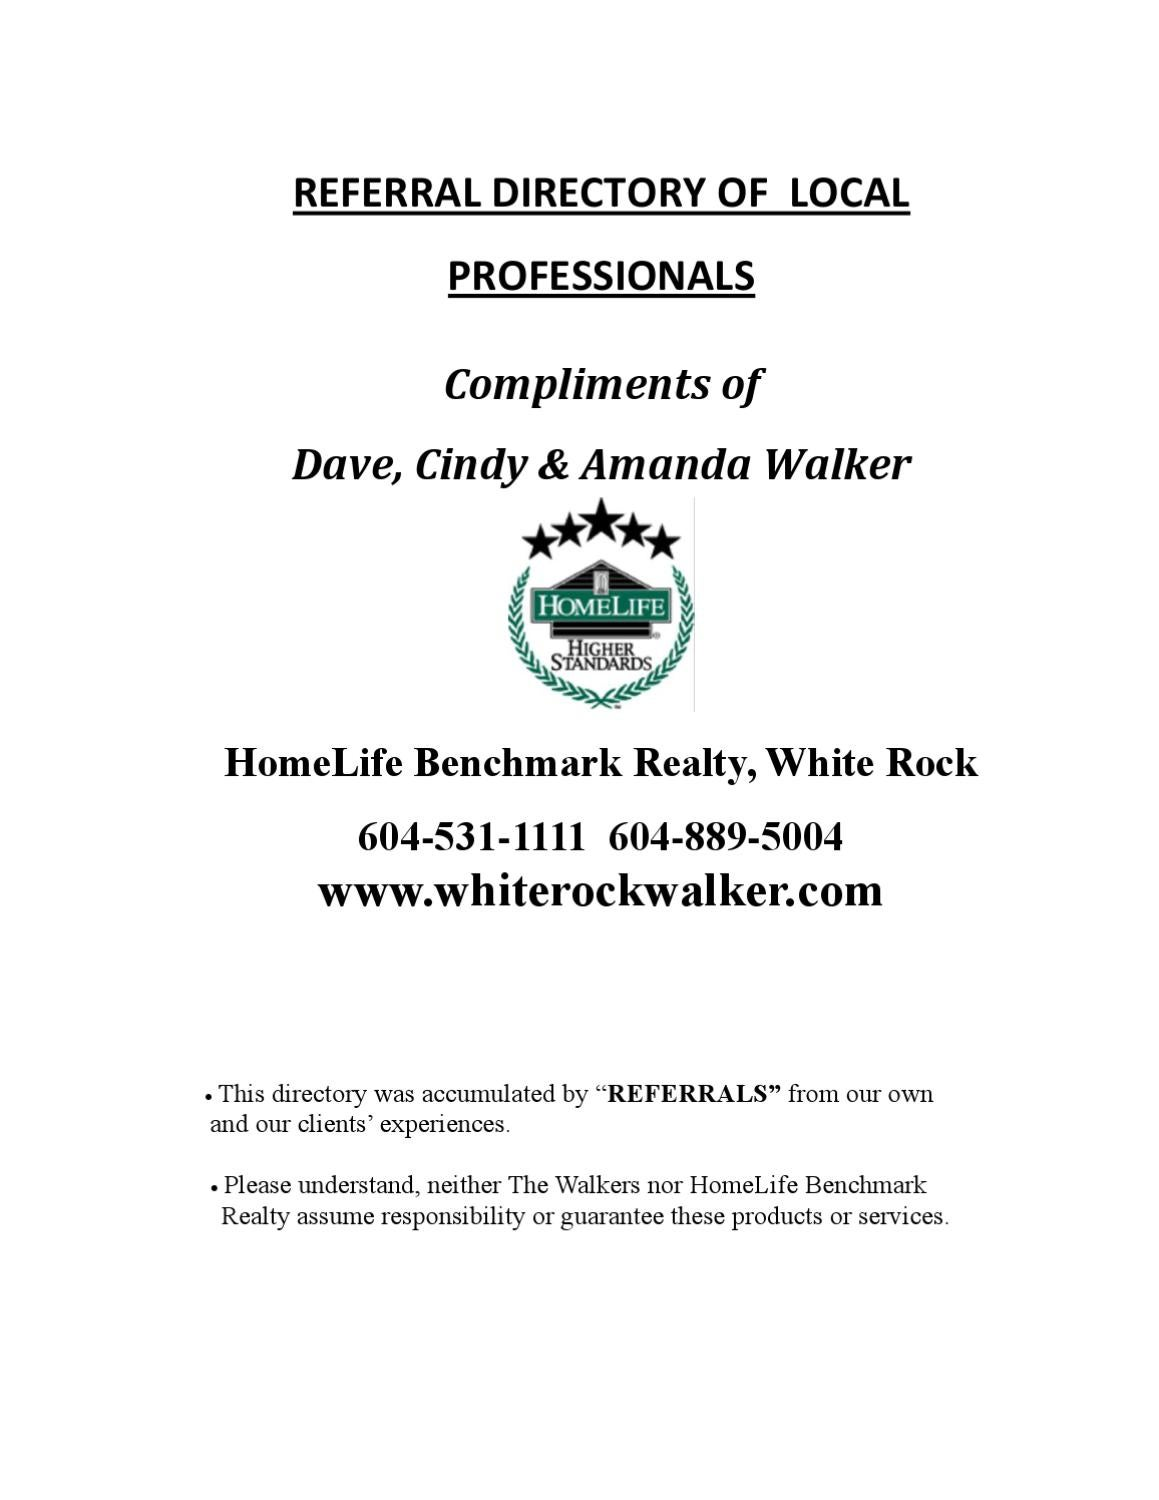 Walker Real Estate Referral Directory By Cindy